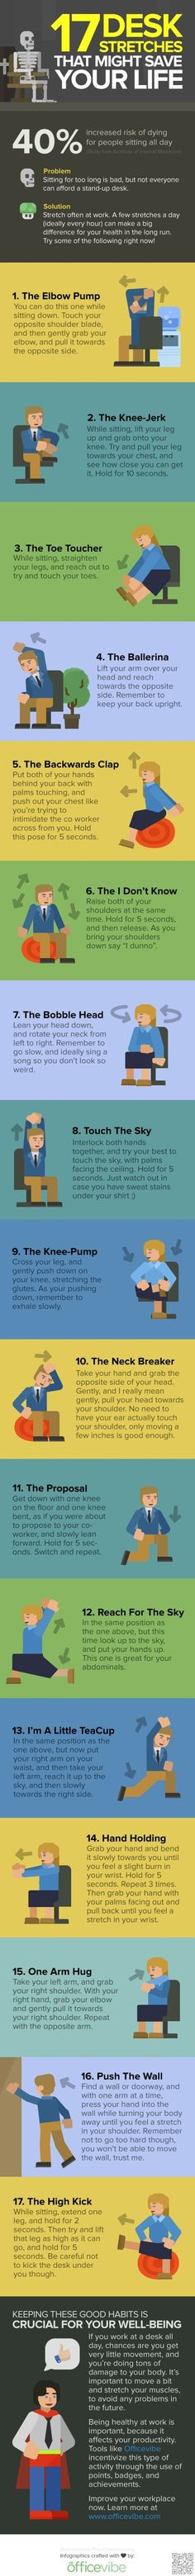 Stretching is important, no matter where you are! Check out these tips you can do to relieve tension and live longer.